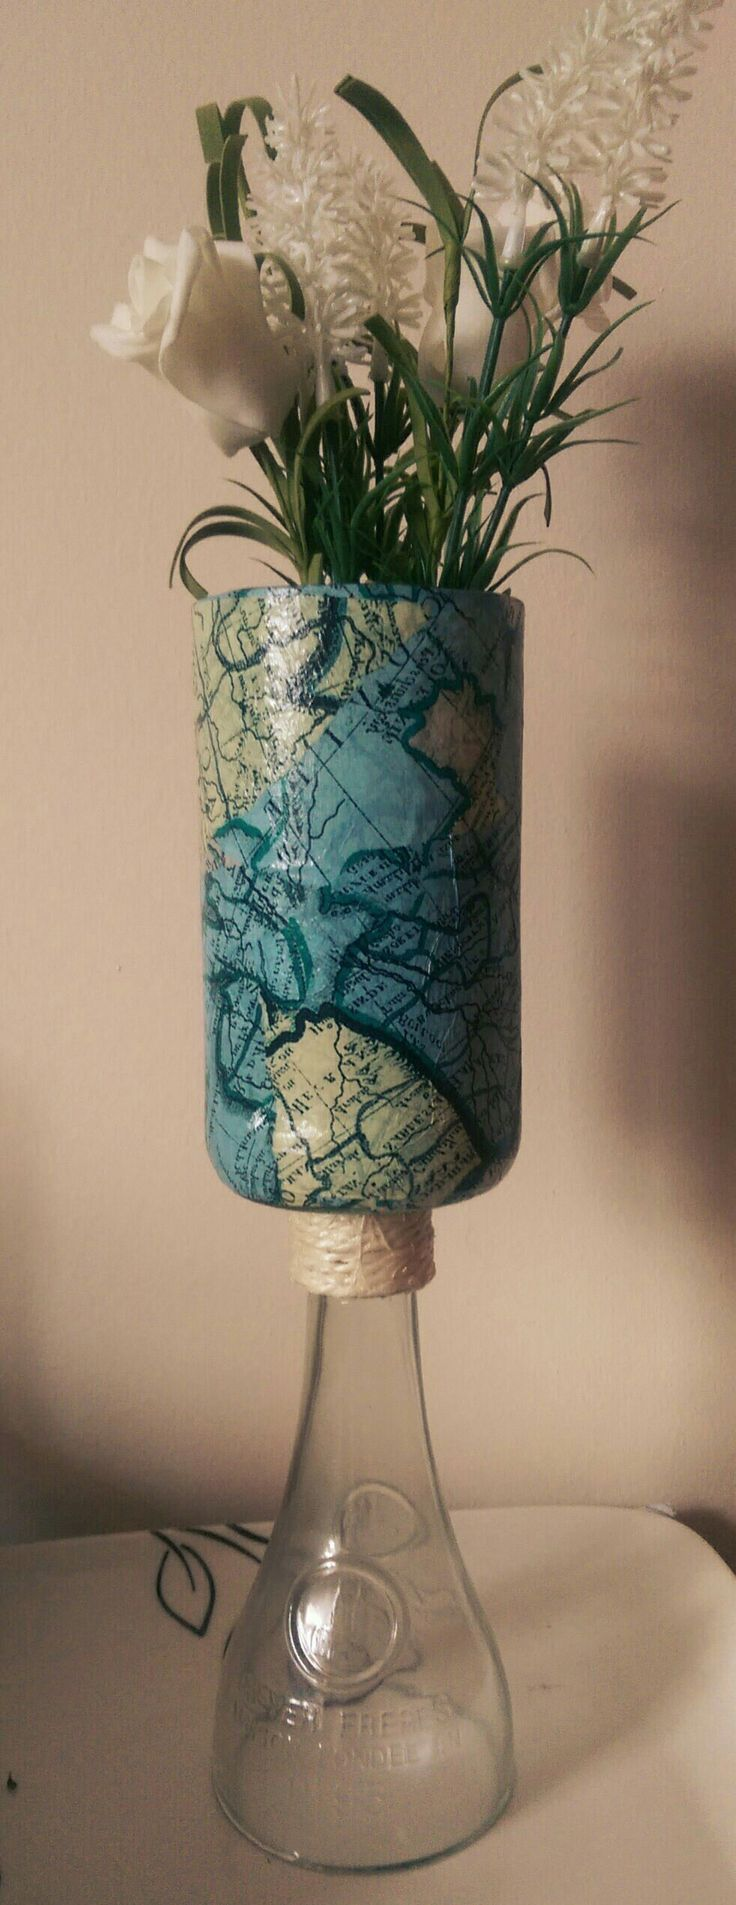 Aldi lemonade bottle cut and decoupaged with olde world maps. Decorated with cord and used as a vase. Can also be used as a tealight holder!